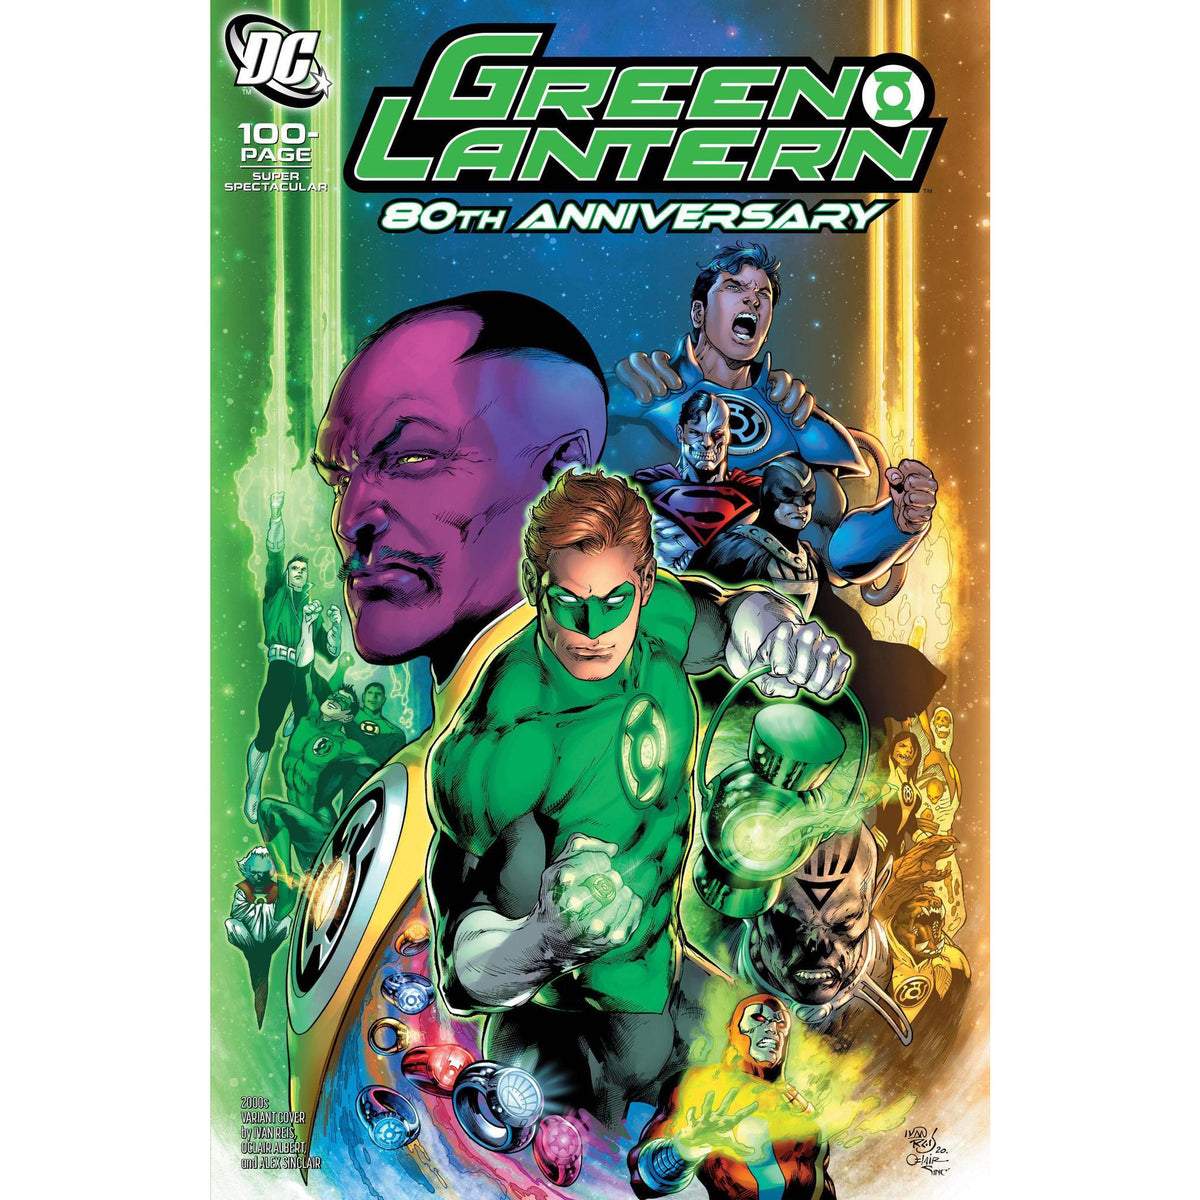 GREEN LANTERN 80TH ANNIVERSARY 100 PAGE SUPER SPECTACULAR #1 - 2000S REIS COVER H - DC COMICS